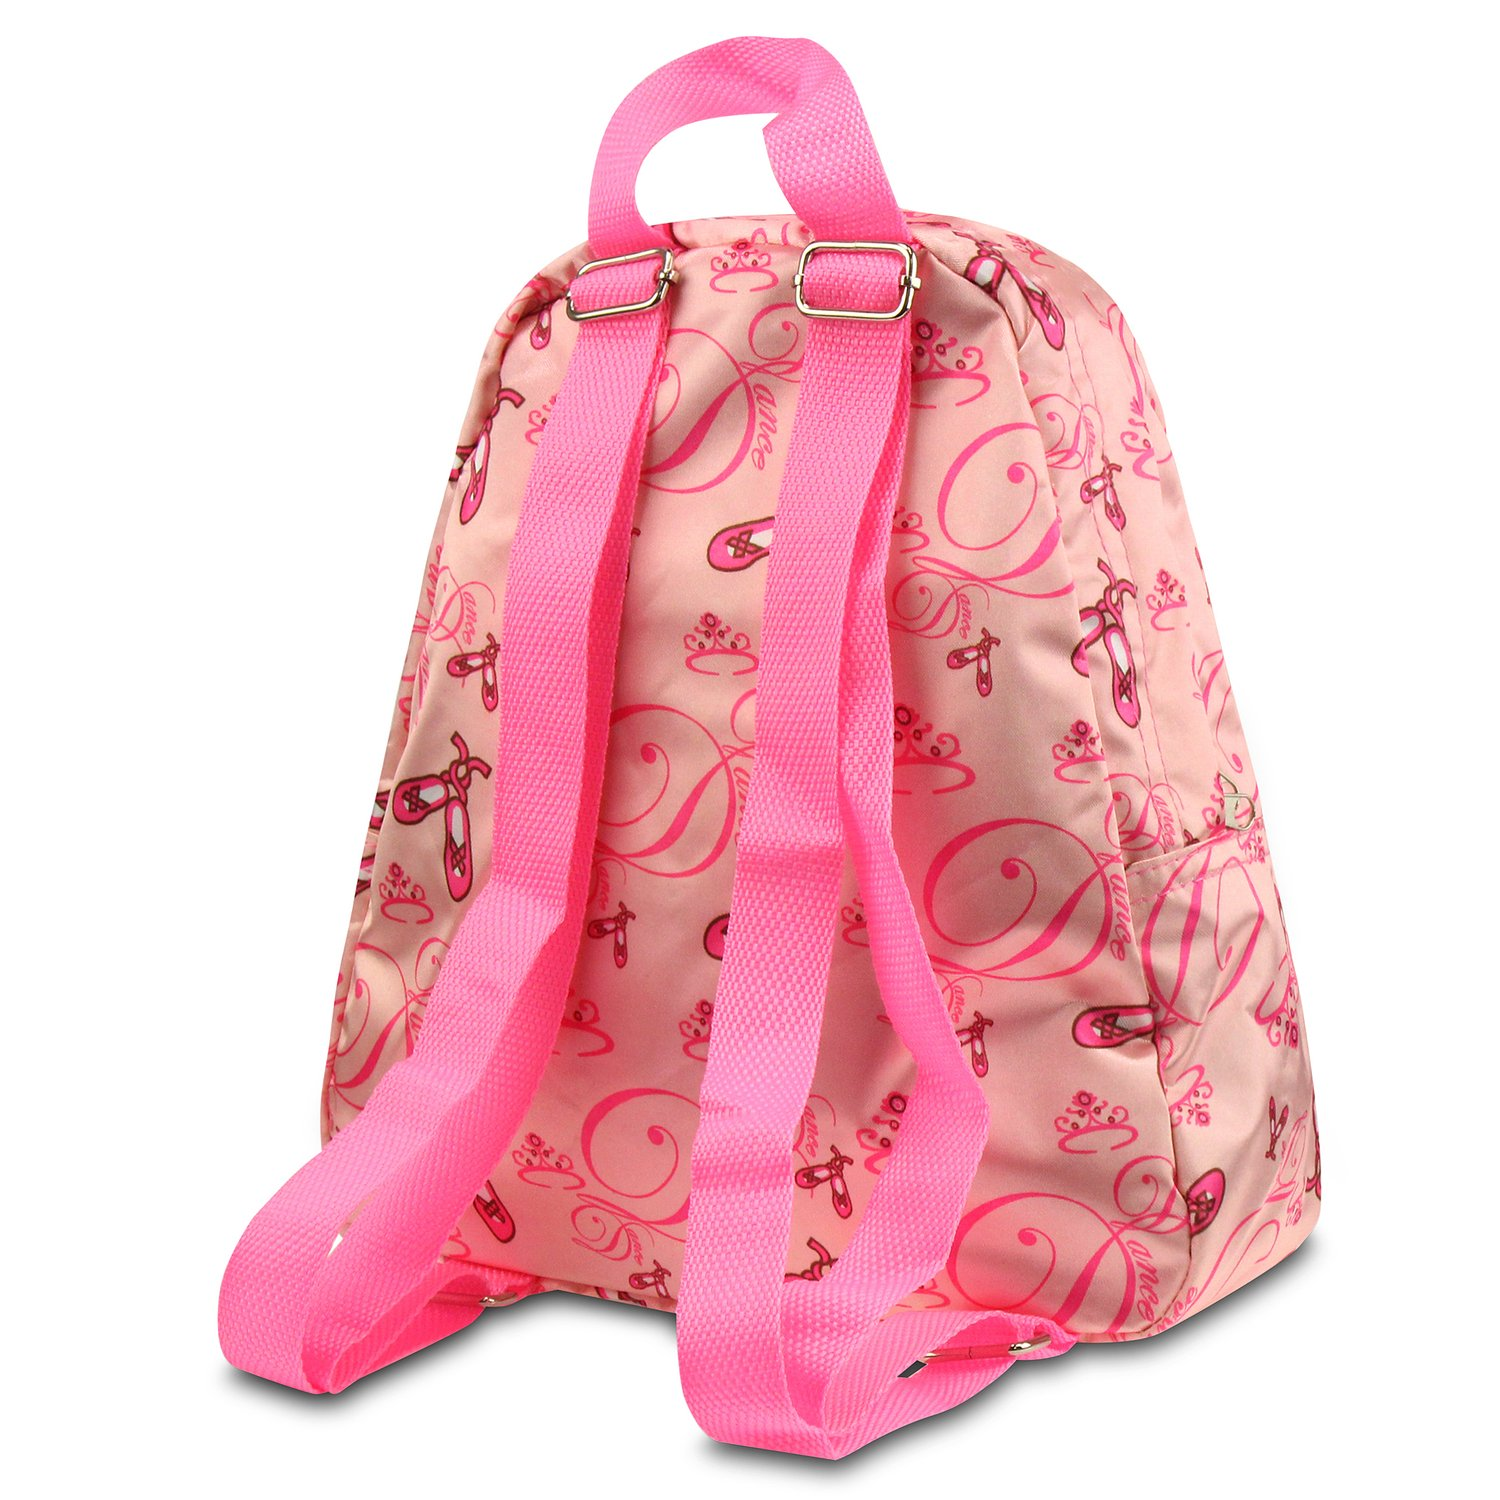 Green//Pink Paisley Zodaca Kids Small Backpack